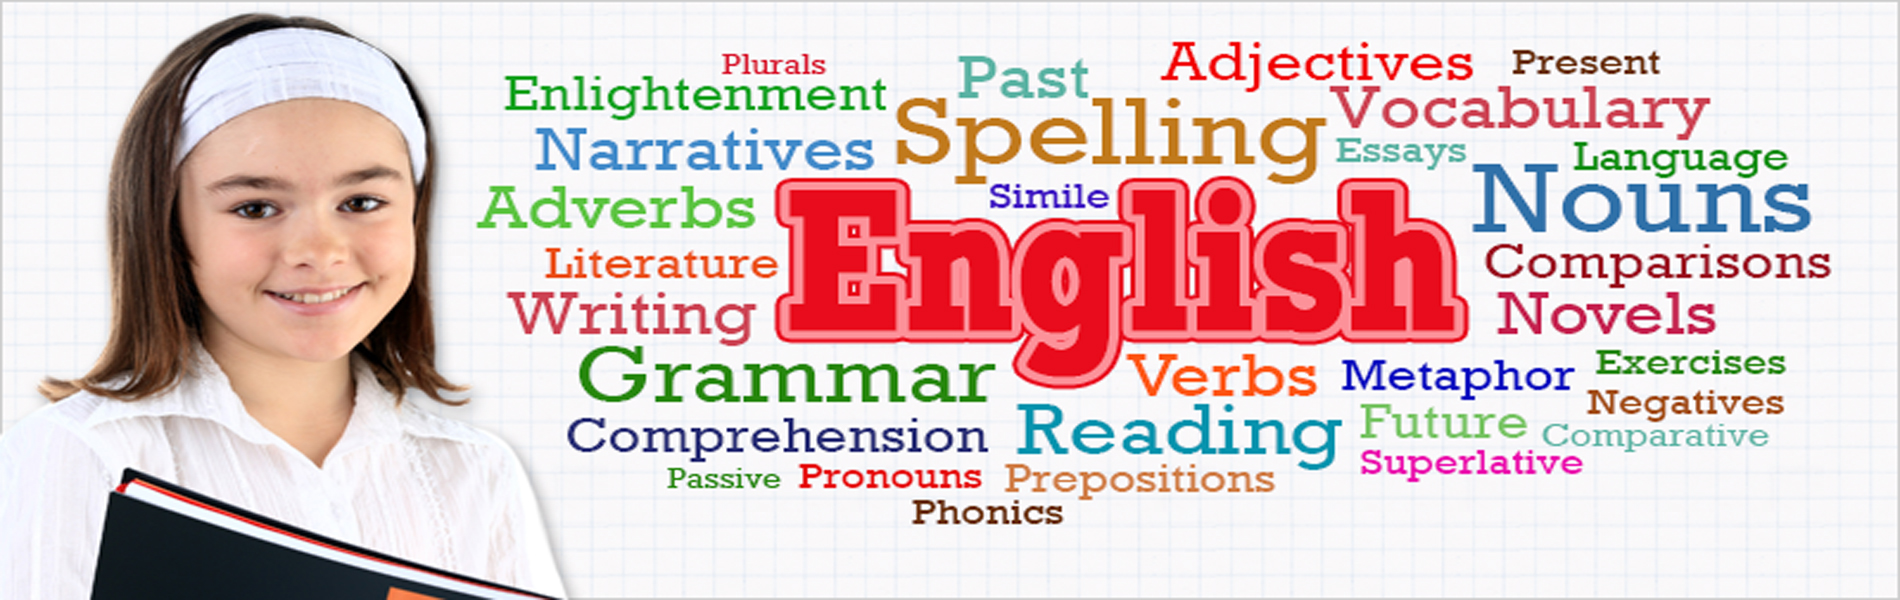 We provide English tutoring for students aged 6-16